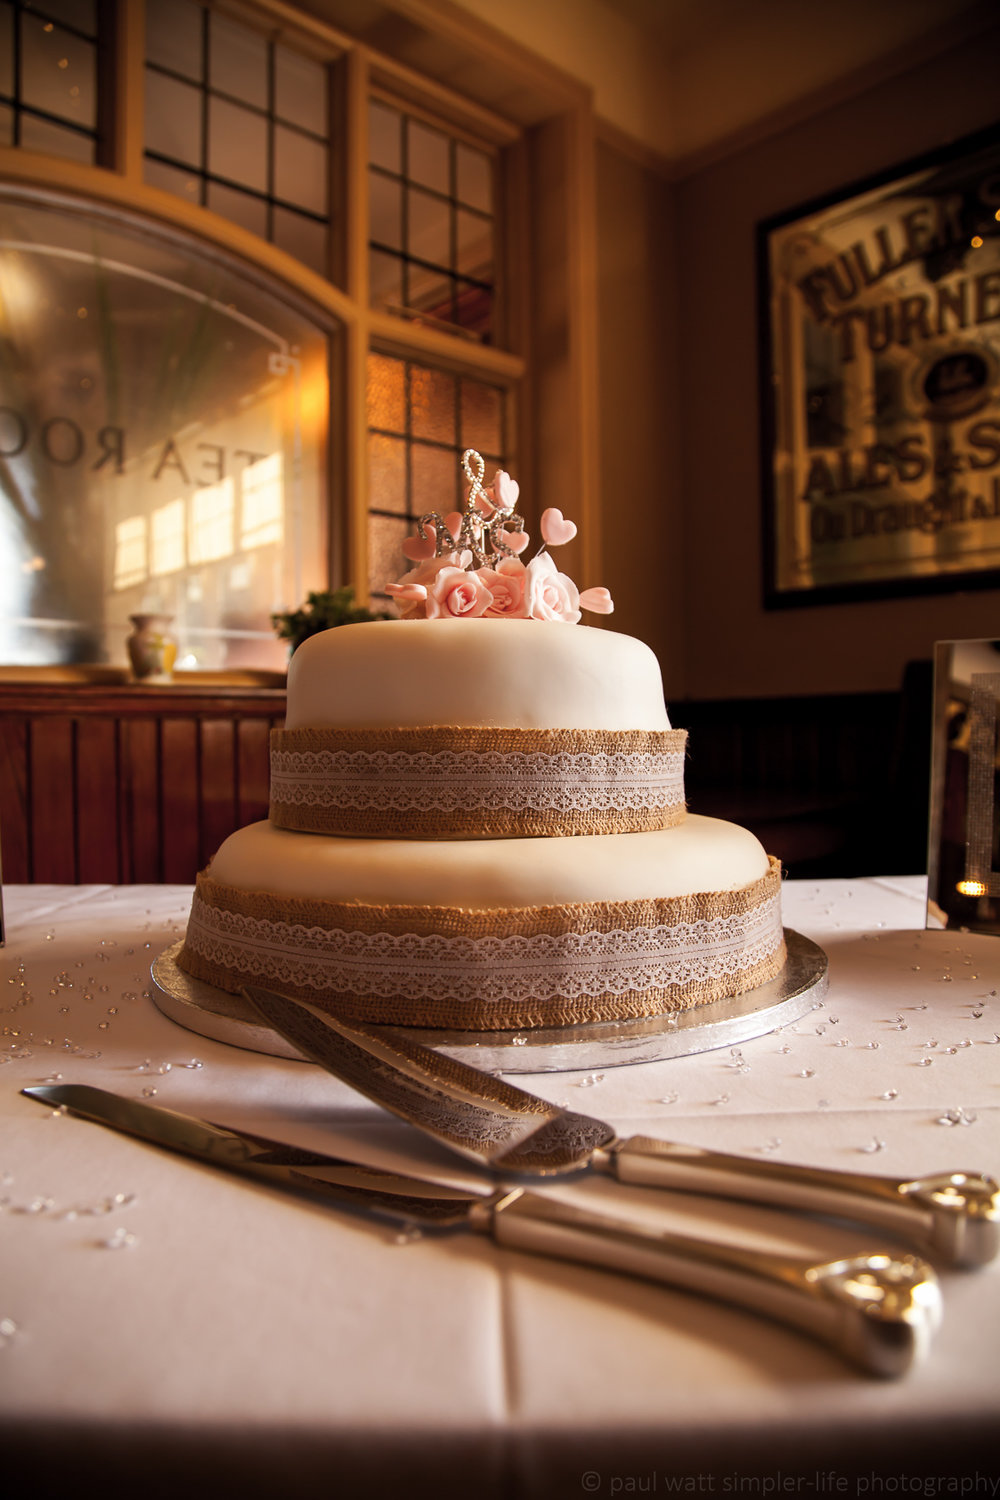 The cake looked simple and elegant,which matched the rest of the day